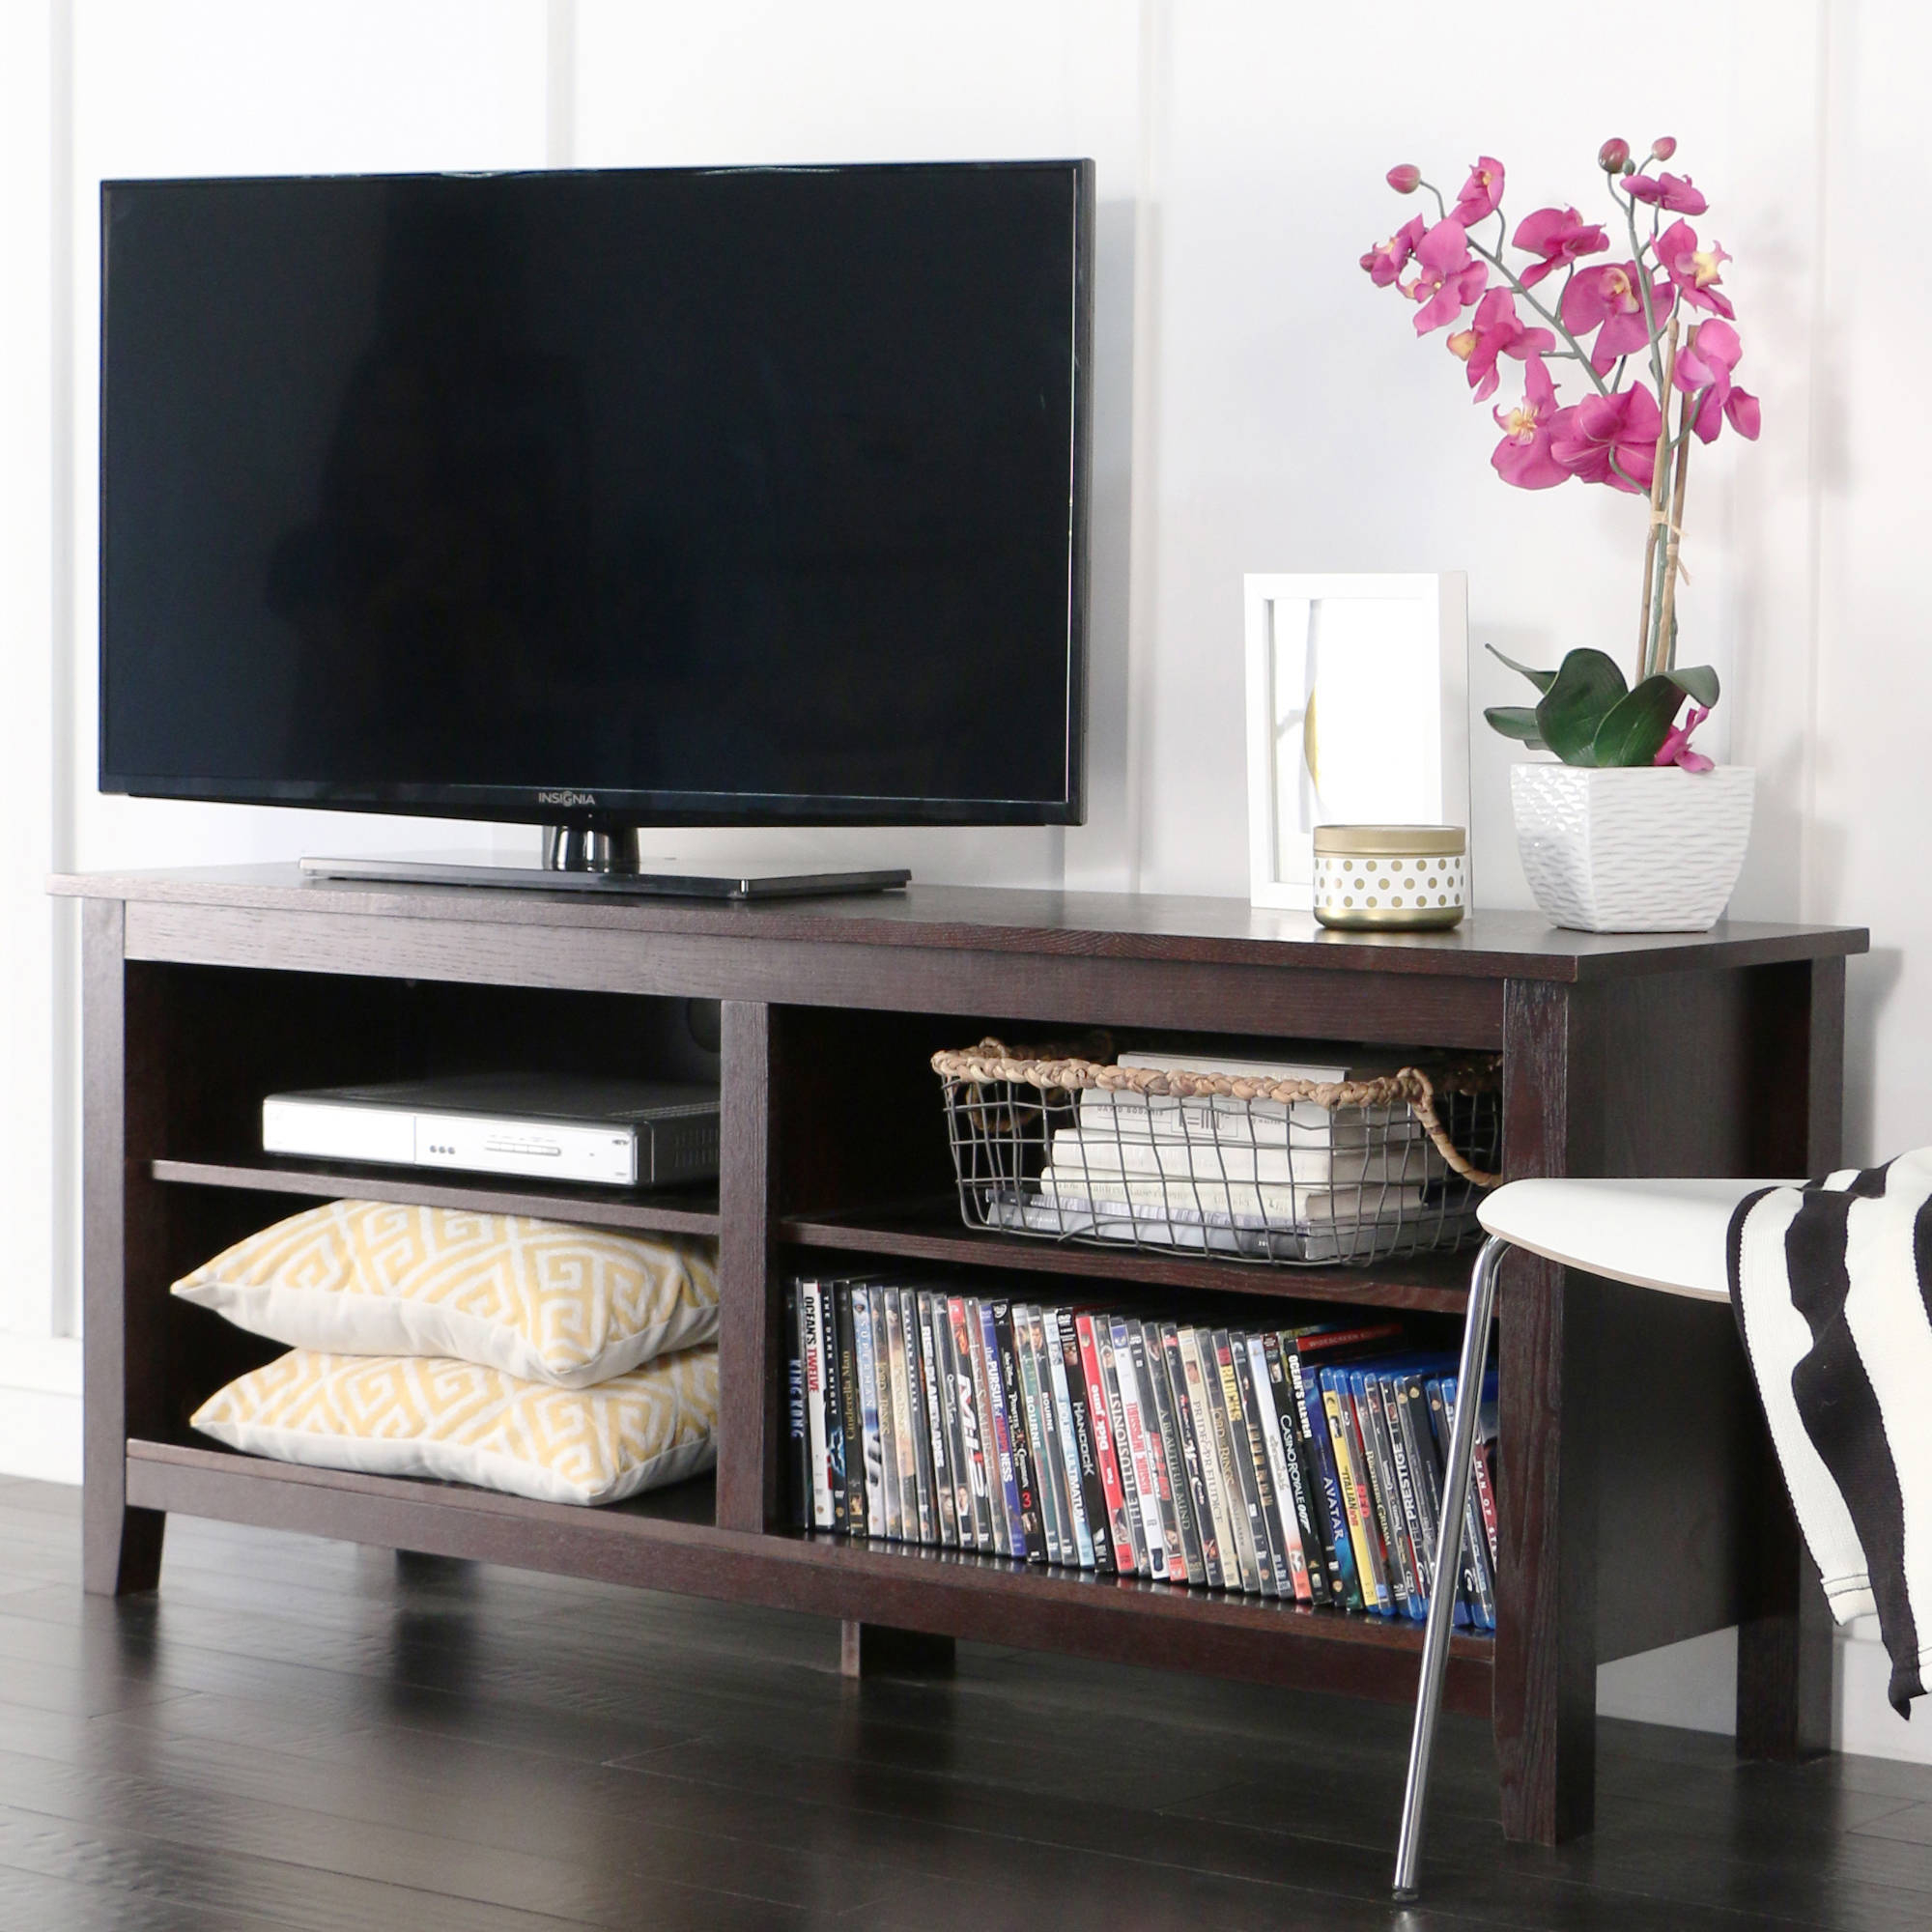 Whalen Media Fireplace For Your Home Television Stand Fits Tvs Up To with regard to Walton Grey 72 Inch Tv Stands (Image 29 of 30)